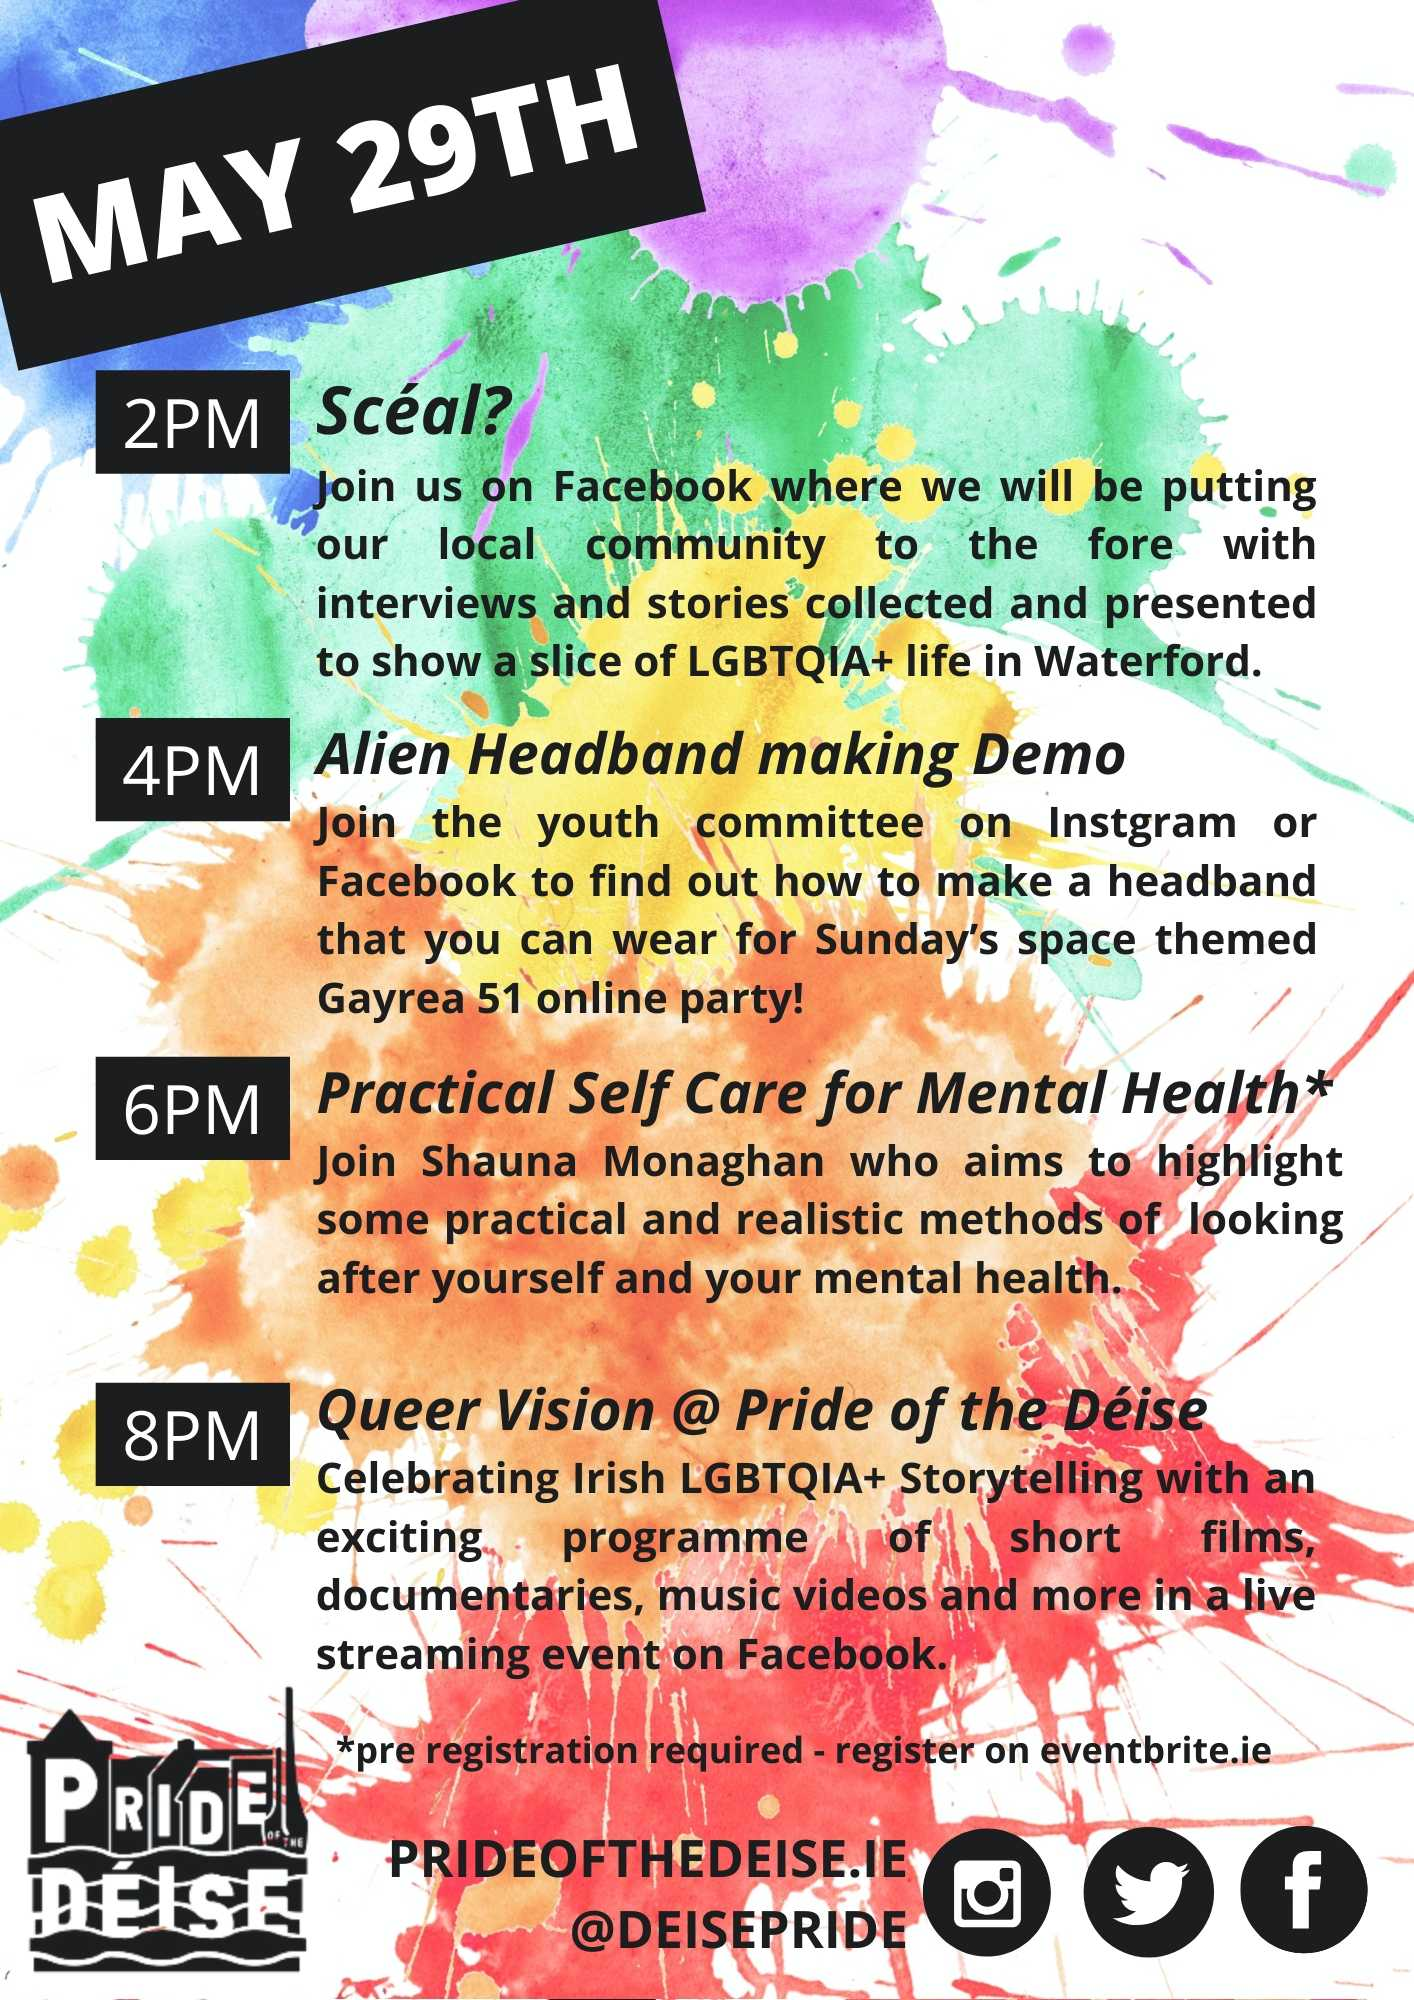 May 29th  2PM Scéal?  Join us on Facebook where we'll be putting our local community to the fore, with interviews and stories collected and collated to show a slice of LGBTQIA+ life in Waterford. 4PM Alien Headband making Demo Join the youth committee on Facebook and use what you have to make part of a costume of fancy dress you can wear for Sunday's space themed Gayrea 51 online party! 6PM Practical Self Care for Mental Health* Join Shauna Monaghan who aims to highlight some practical and realistic methods of  looking after yourself and your mental health. 8pm Queer Vision @ Pride of the Déise Celebrating Irish LGBTQIA+ Storytelling with an exciting programme of short films, documentaries, music videos and more in a live streaming event on Facebook.